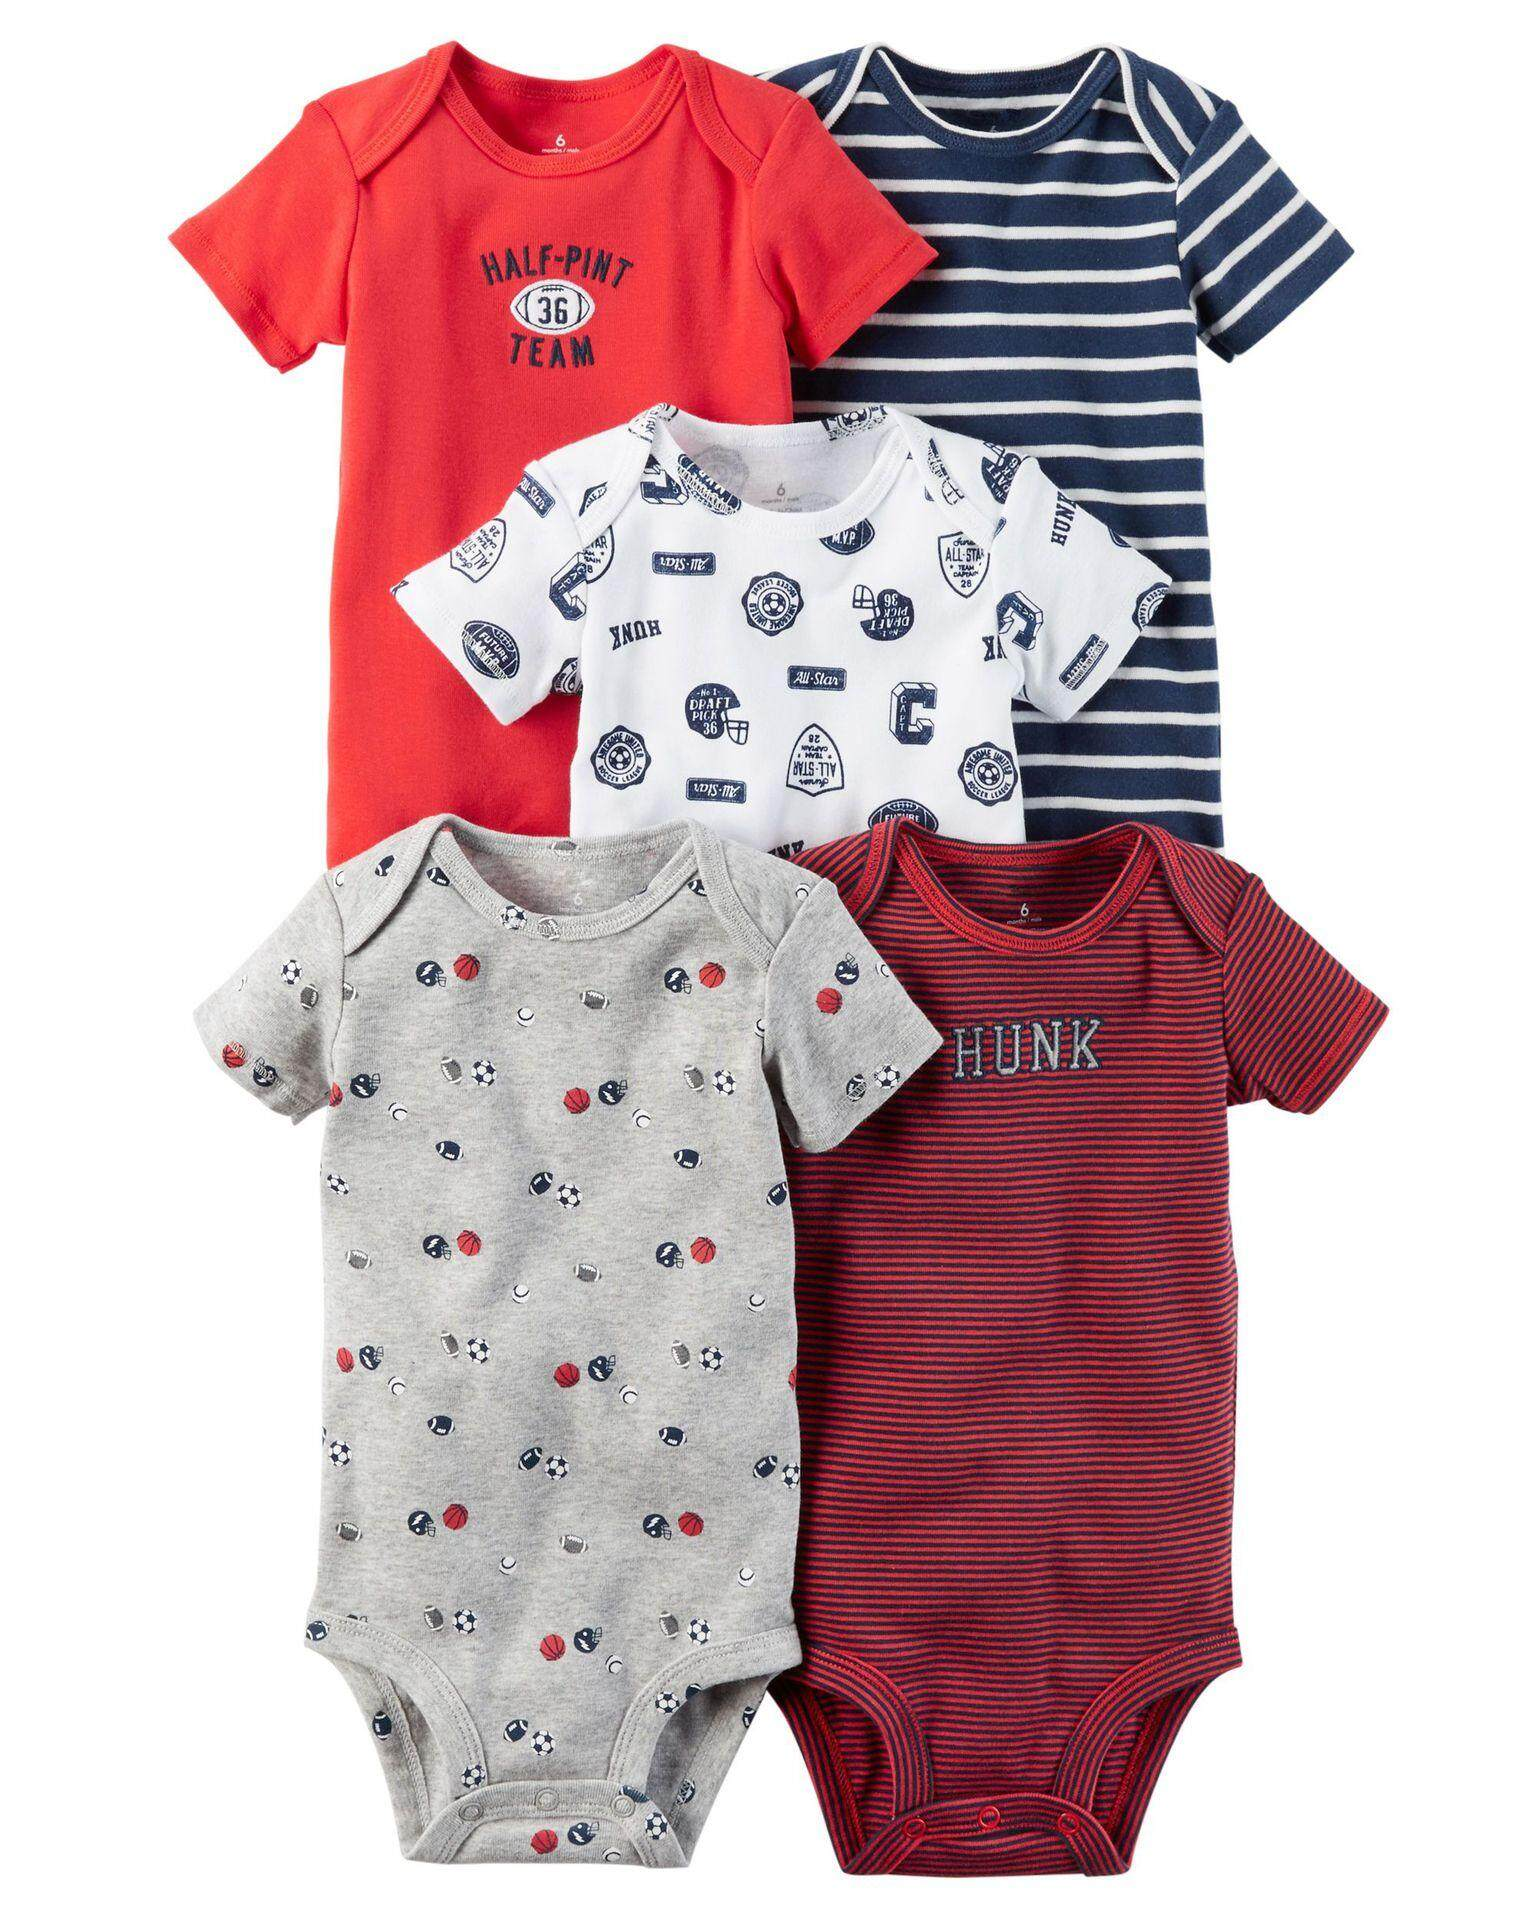 48f1f66ff 5PCS Set Summer Baby Clothes Baby Girl Clothes Sets Short Sleeve Cotton  Printed Rompers Baby Rompers